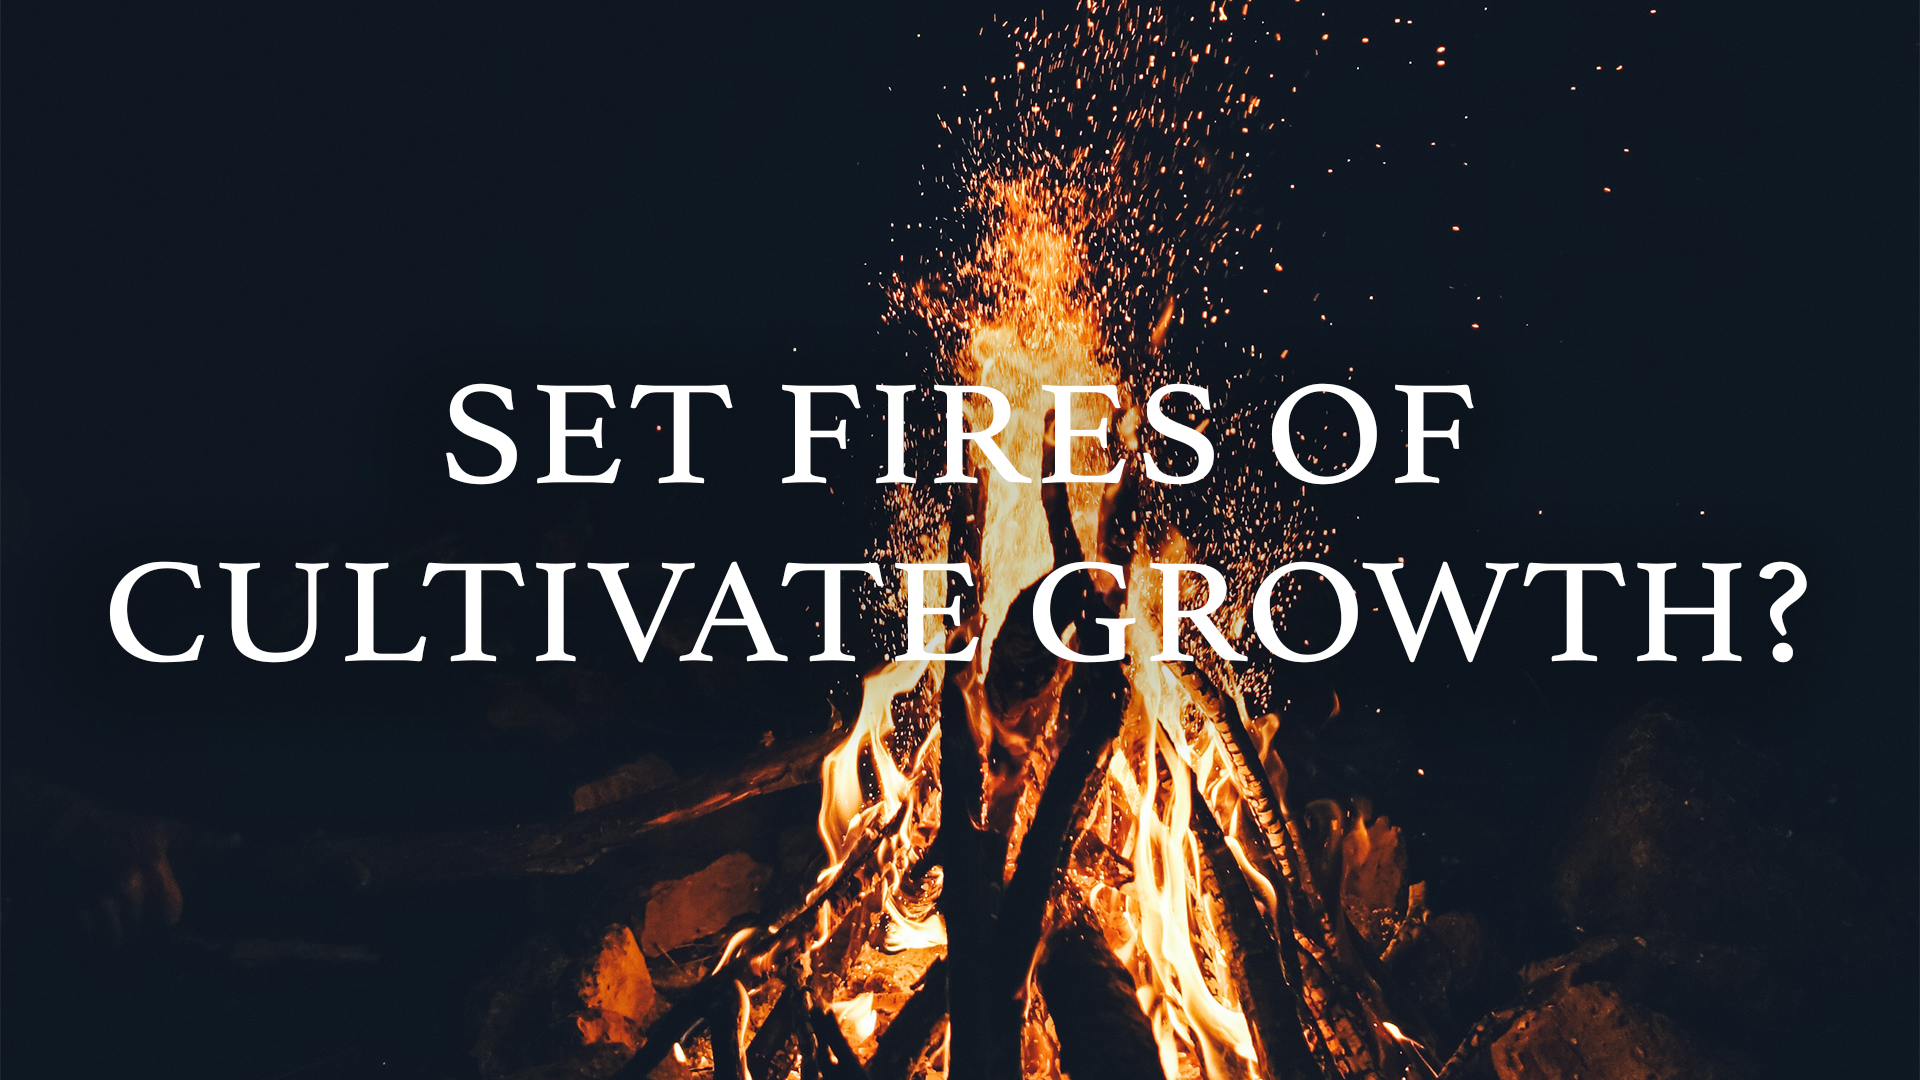 Set Fires of Cultivate Growth?